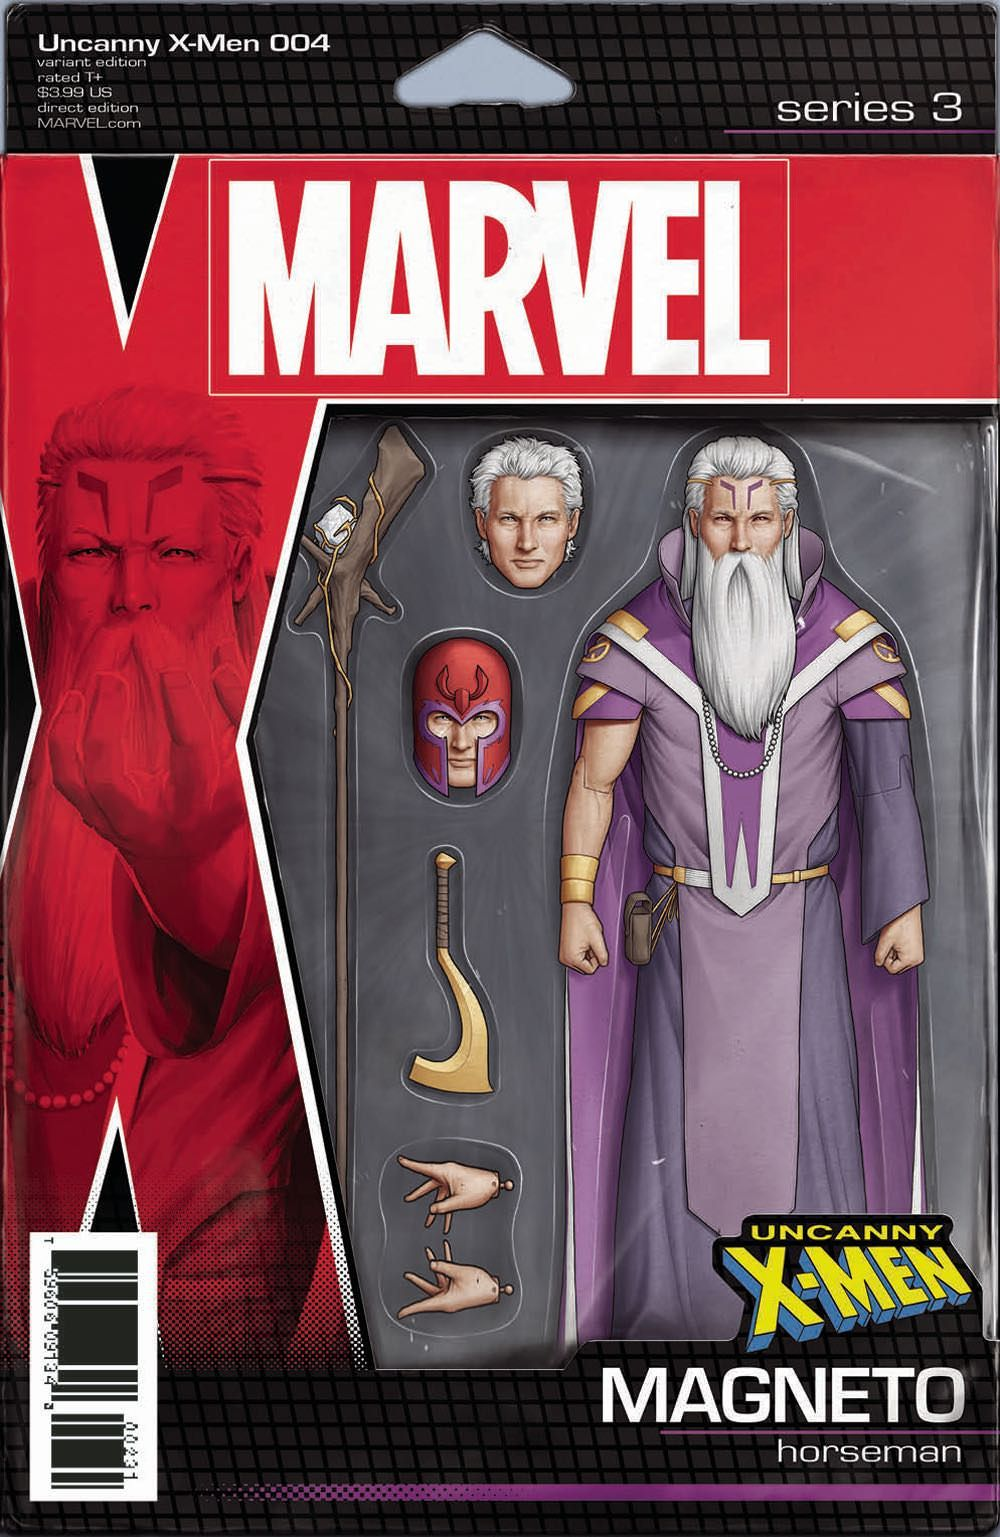 Uncanny X Men 4 Action Figure Variant Cover Magneto By John Tyler Christopher Marvel Marvel Action Figures Comics